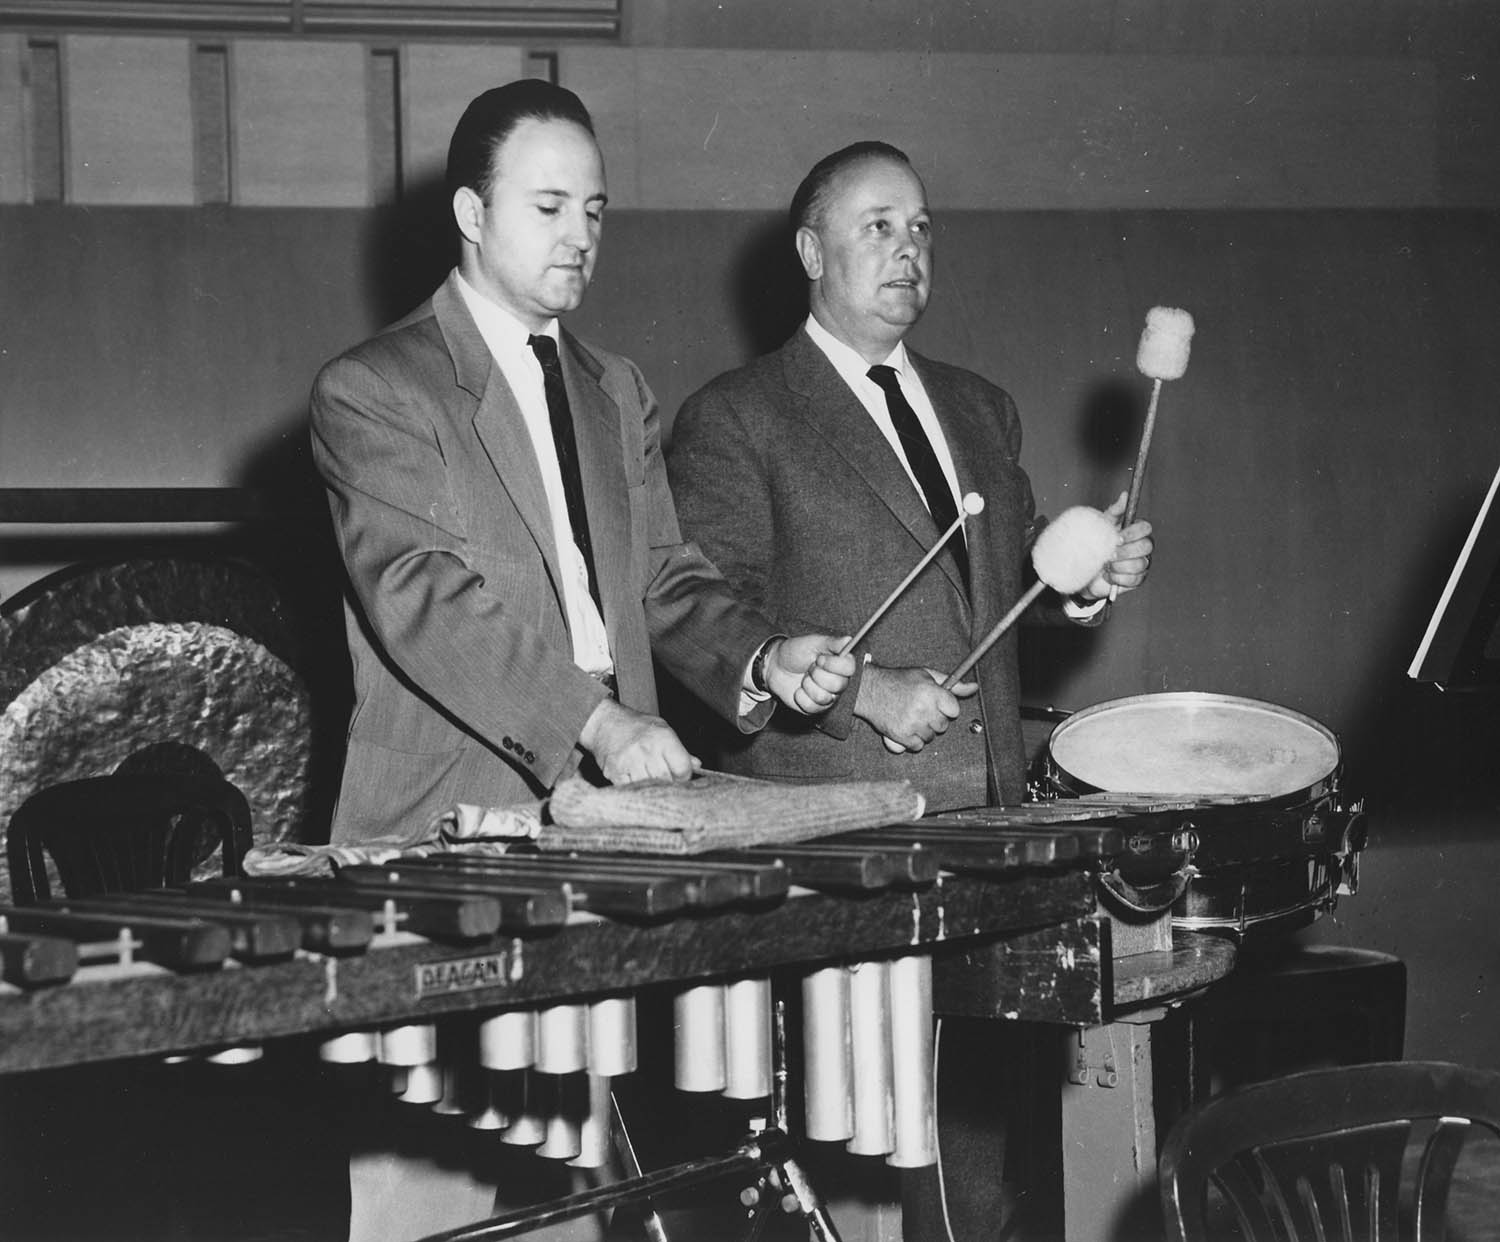 Program annotator Klaus George Roy (Left) and acoustical consultant Heinrich Keilholz (Right) conduct tests on reverberation times with percussion instruments on the renovated Severance Hall stage. Unknown photographer, 1958.